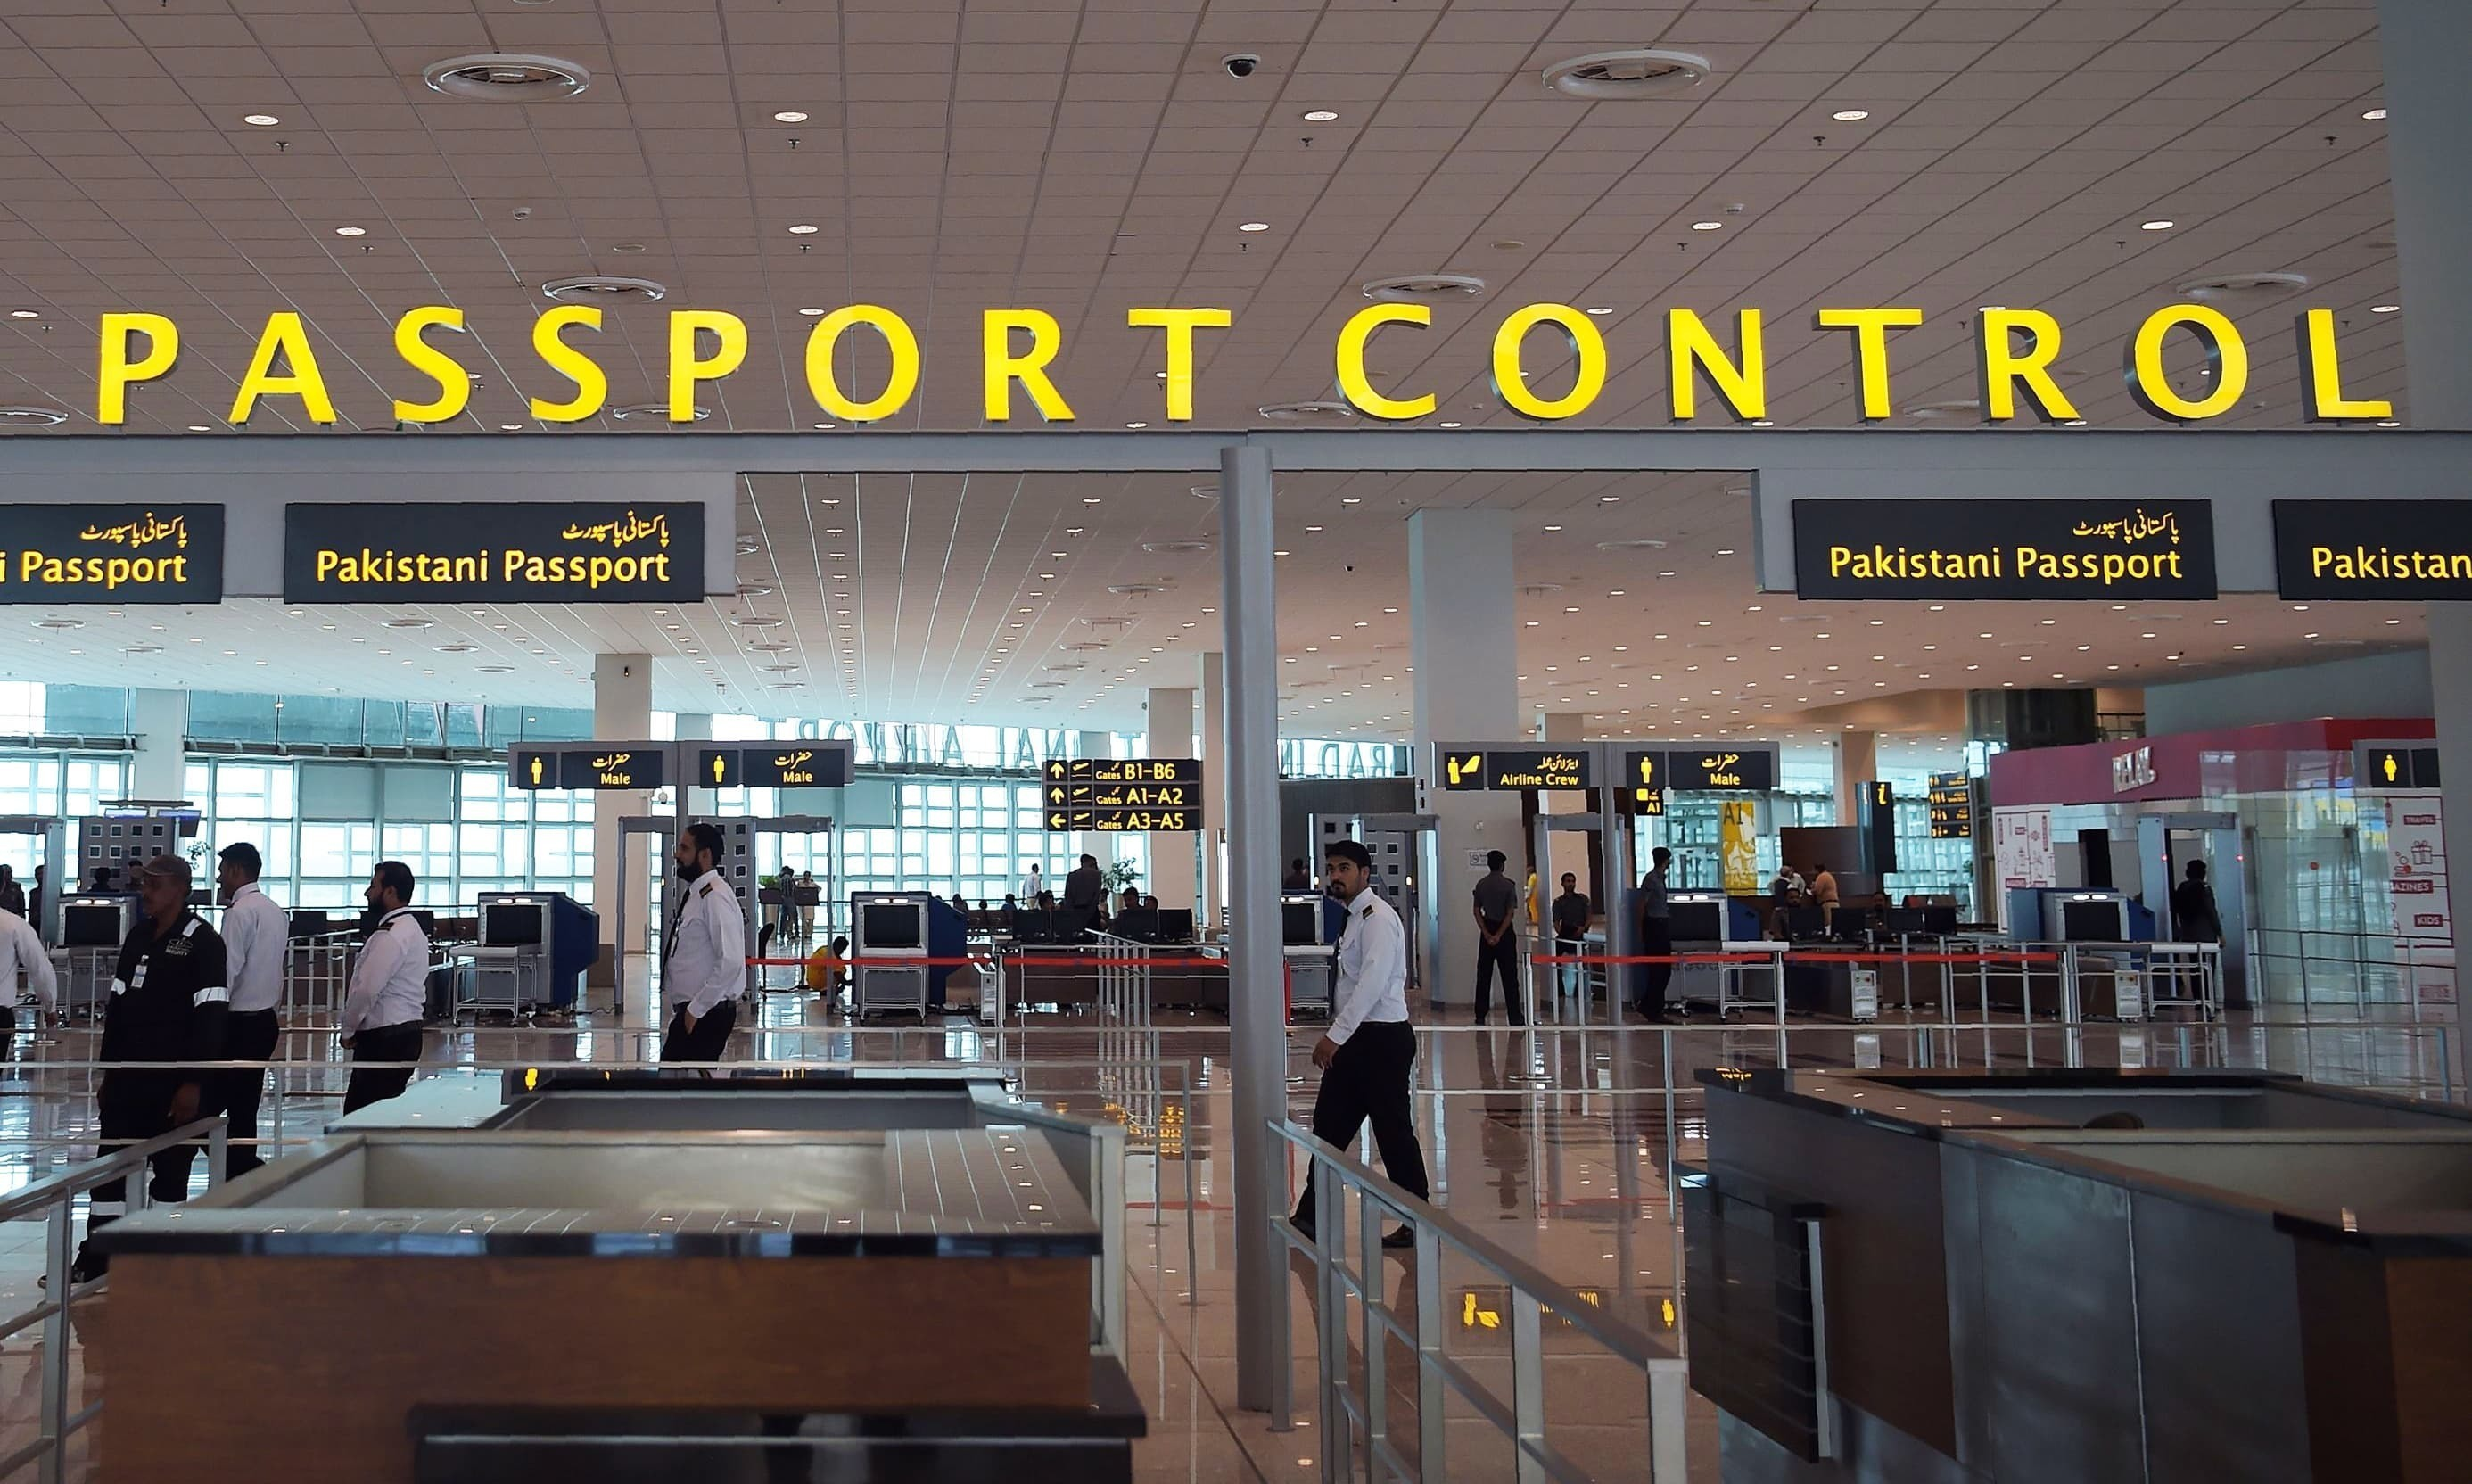 Staff of local carriers on two-way international flights who do exit the airport will have to get tested before travelling to Pakistan. — AFP/File